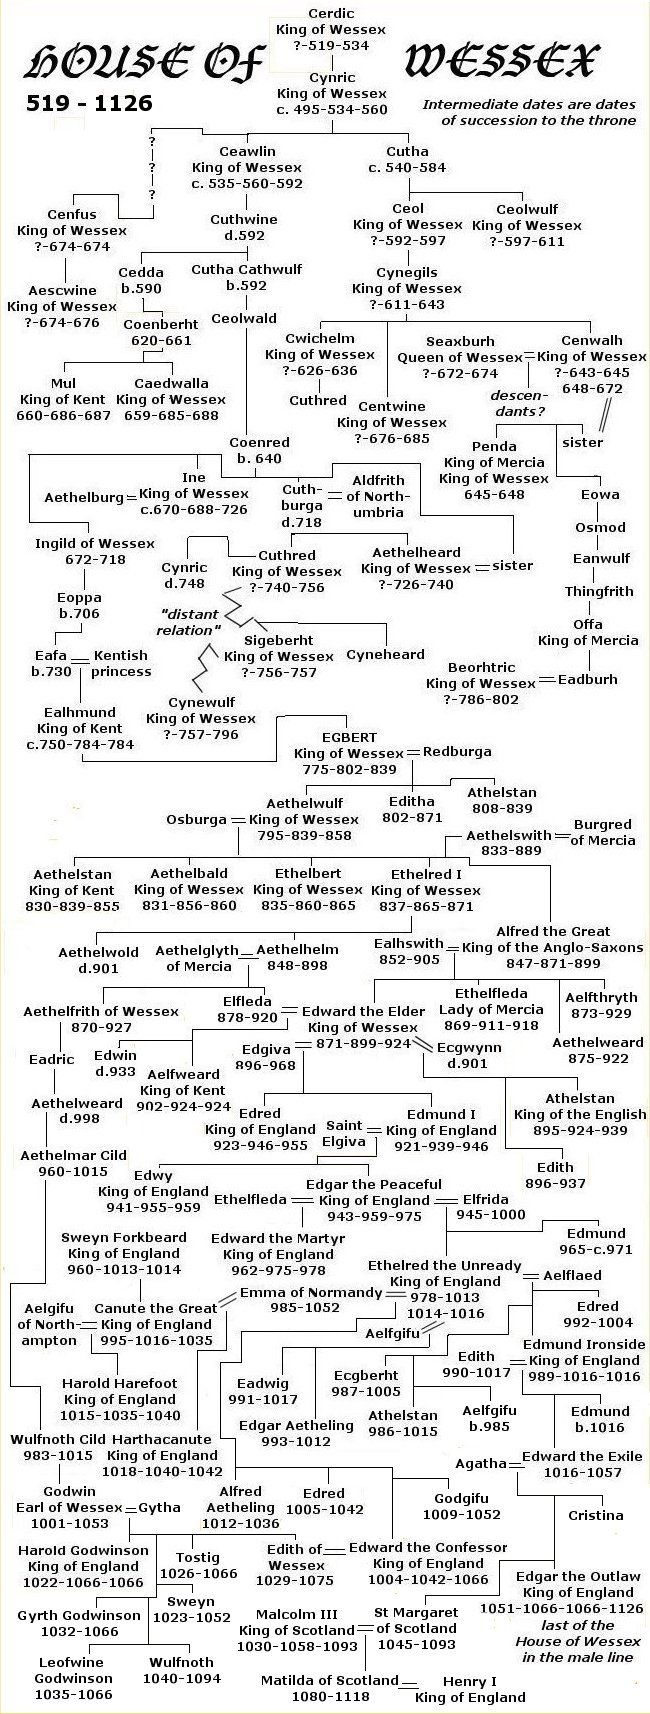 232 best images about royal genealogy on Pinterest